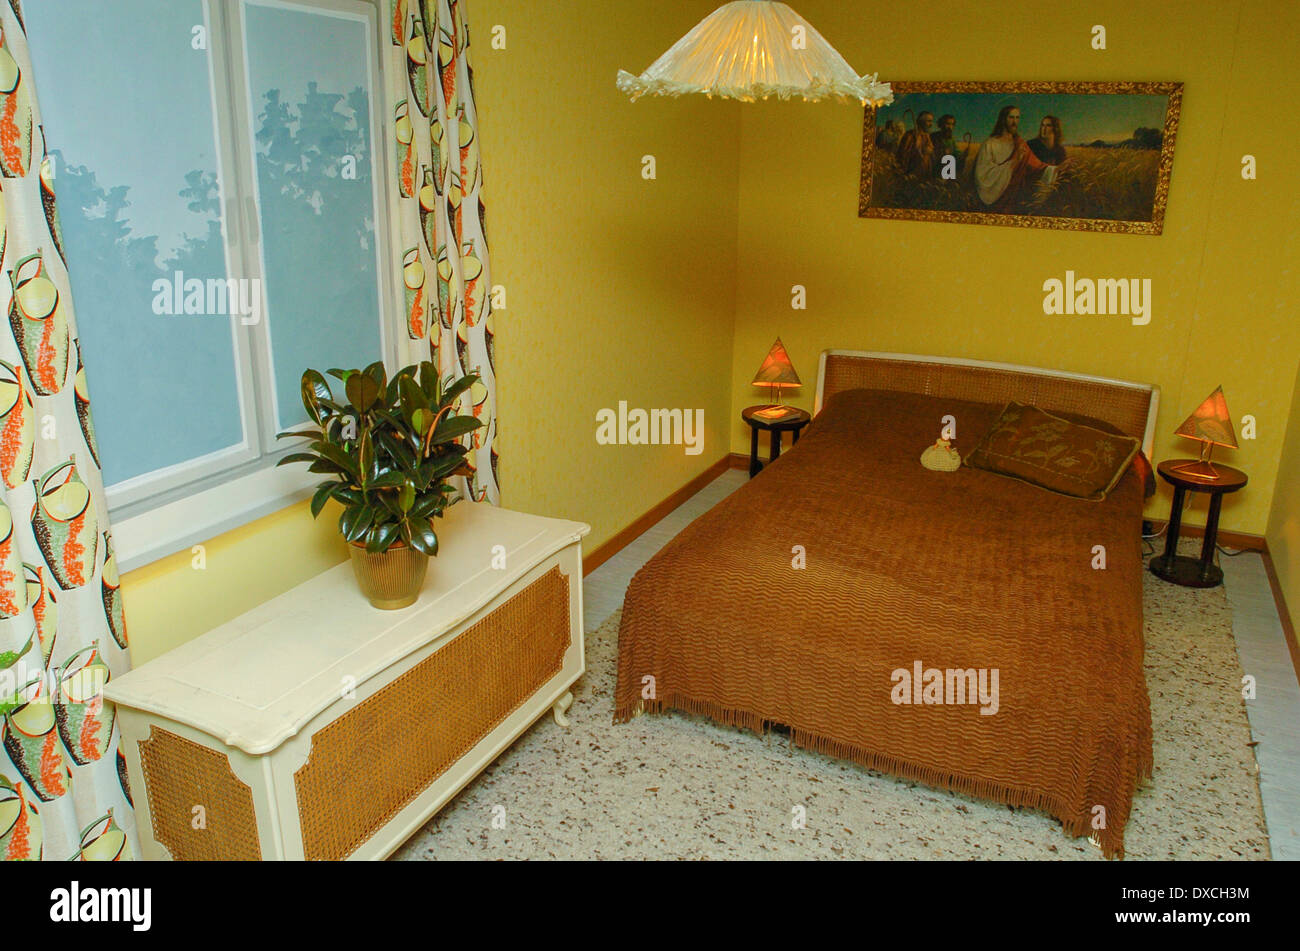 Stock Photo   apartment in 50s style  bedroom. apartment in 50s style  bedroom Stock Photo  Royalty Free Image